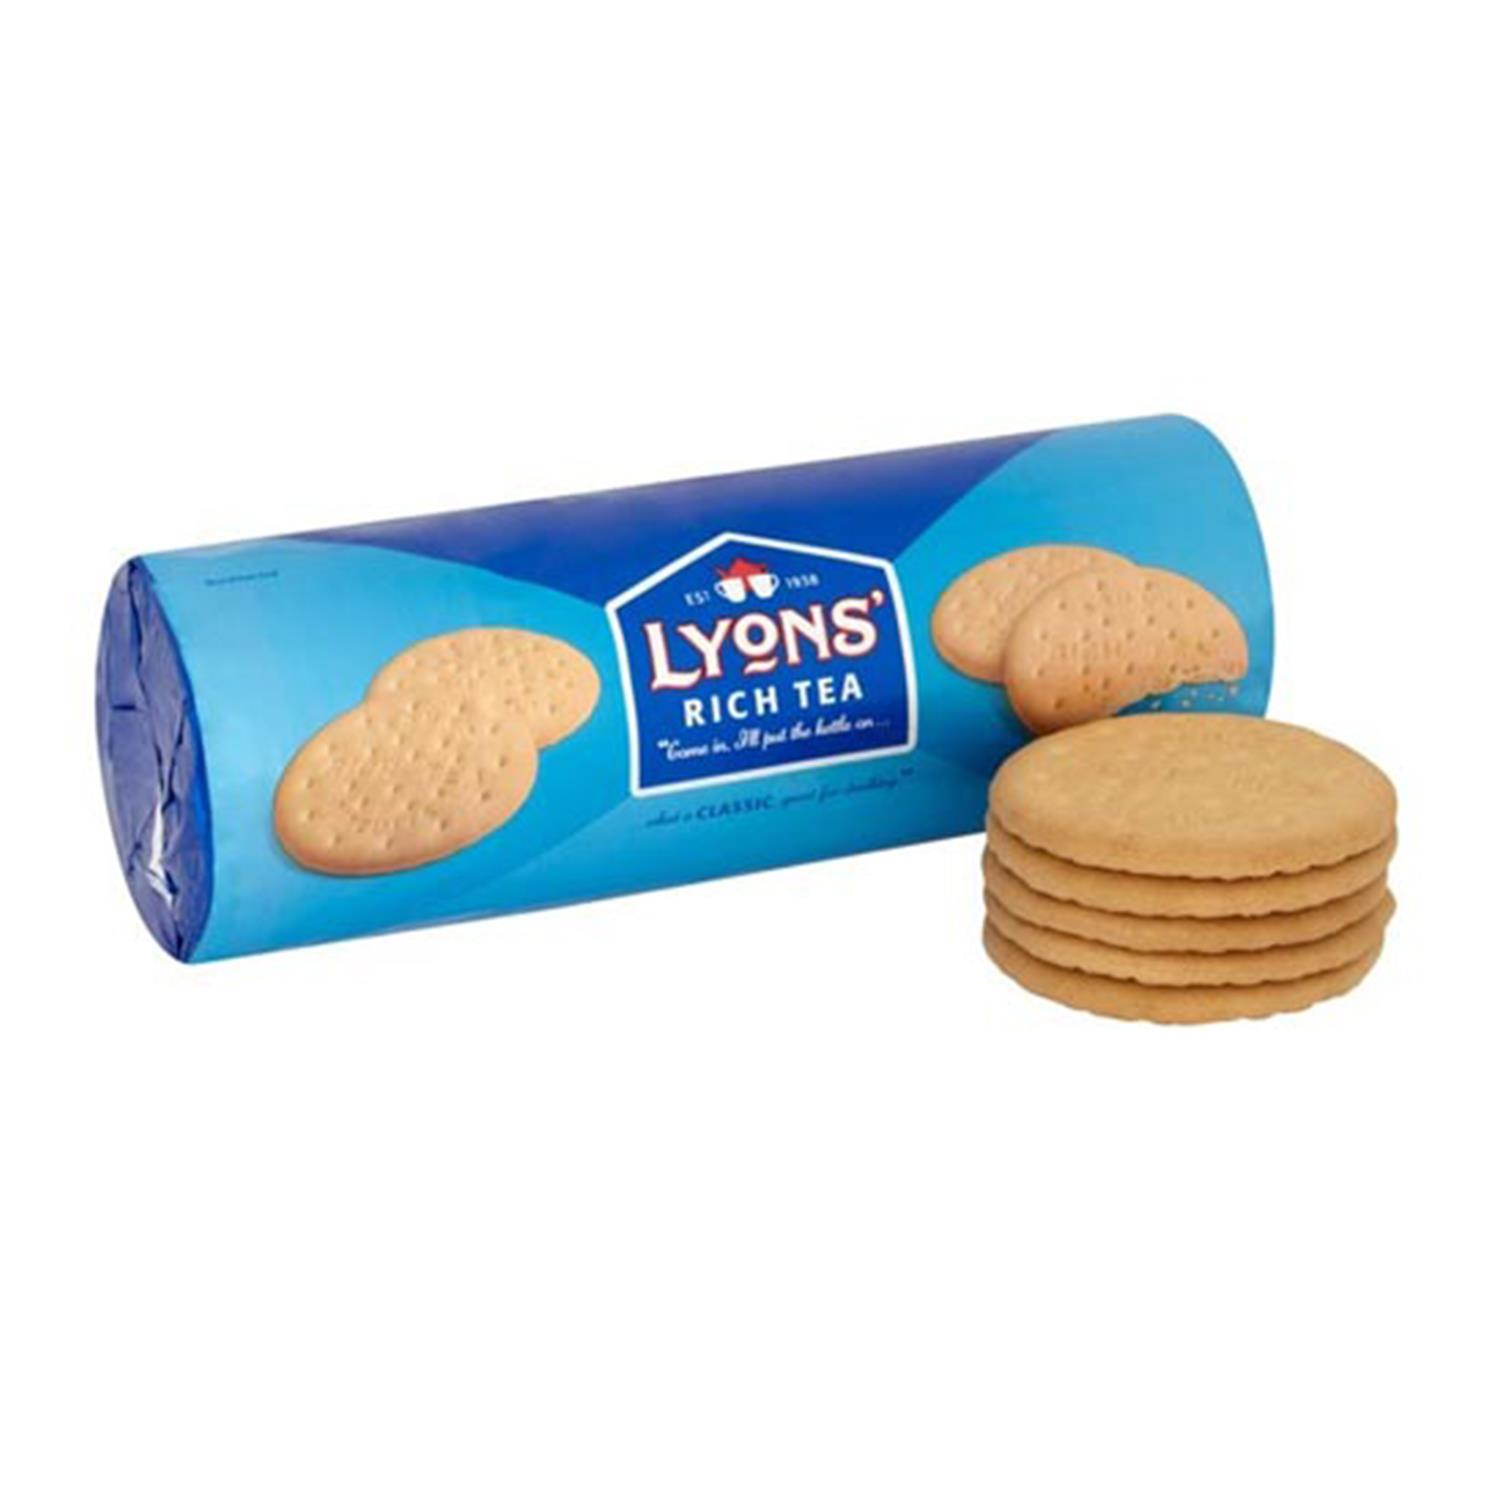 thumbnail 11 - Lyons Rich Tea Biscuits 300g, Great for a morning or afternoon snack